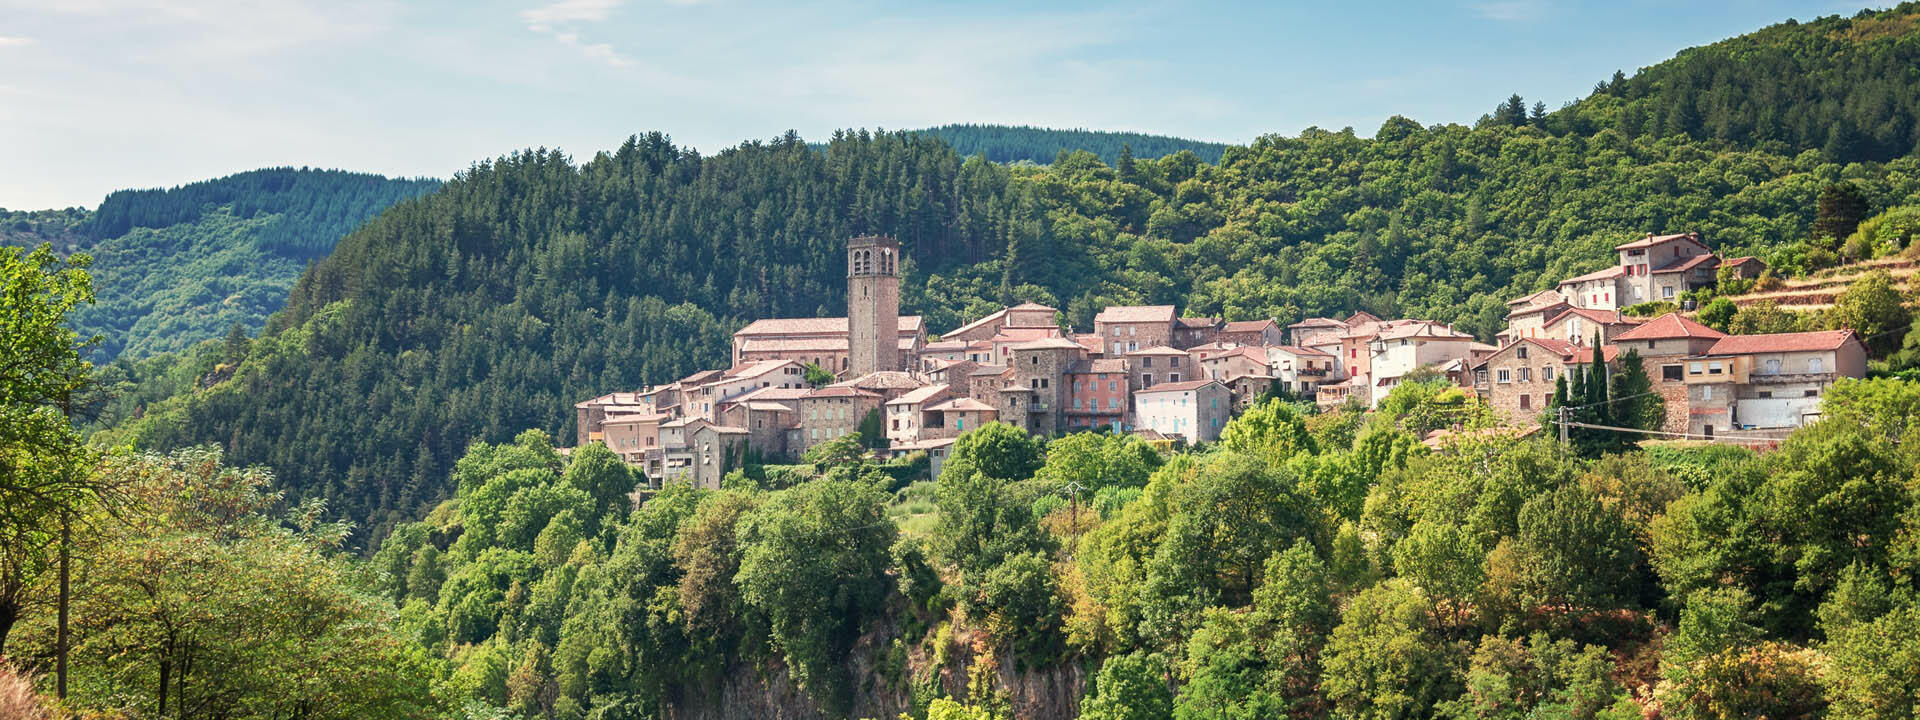 Discover the caves and history of the Ardèche